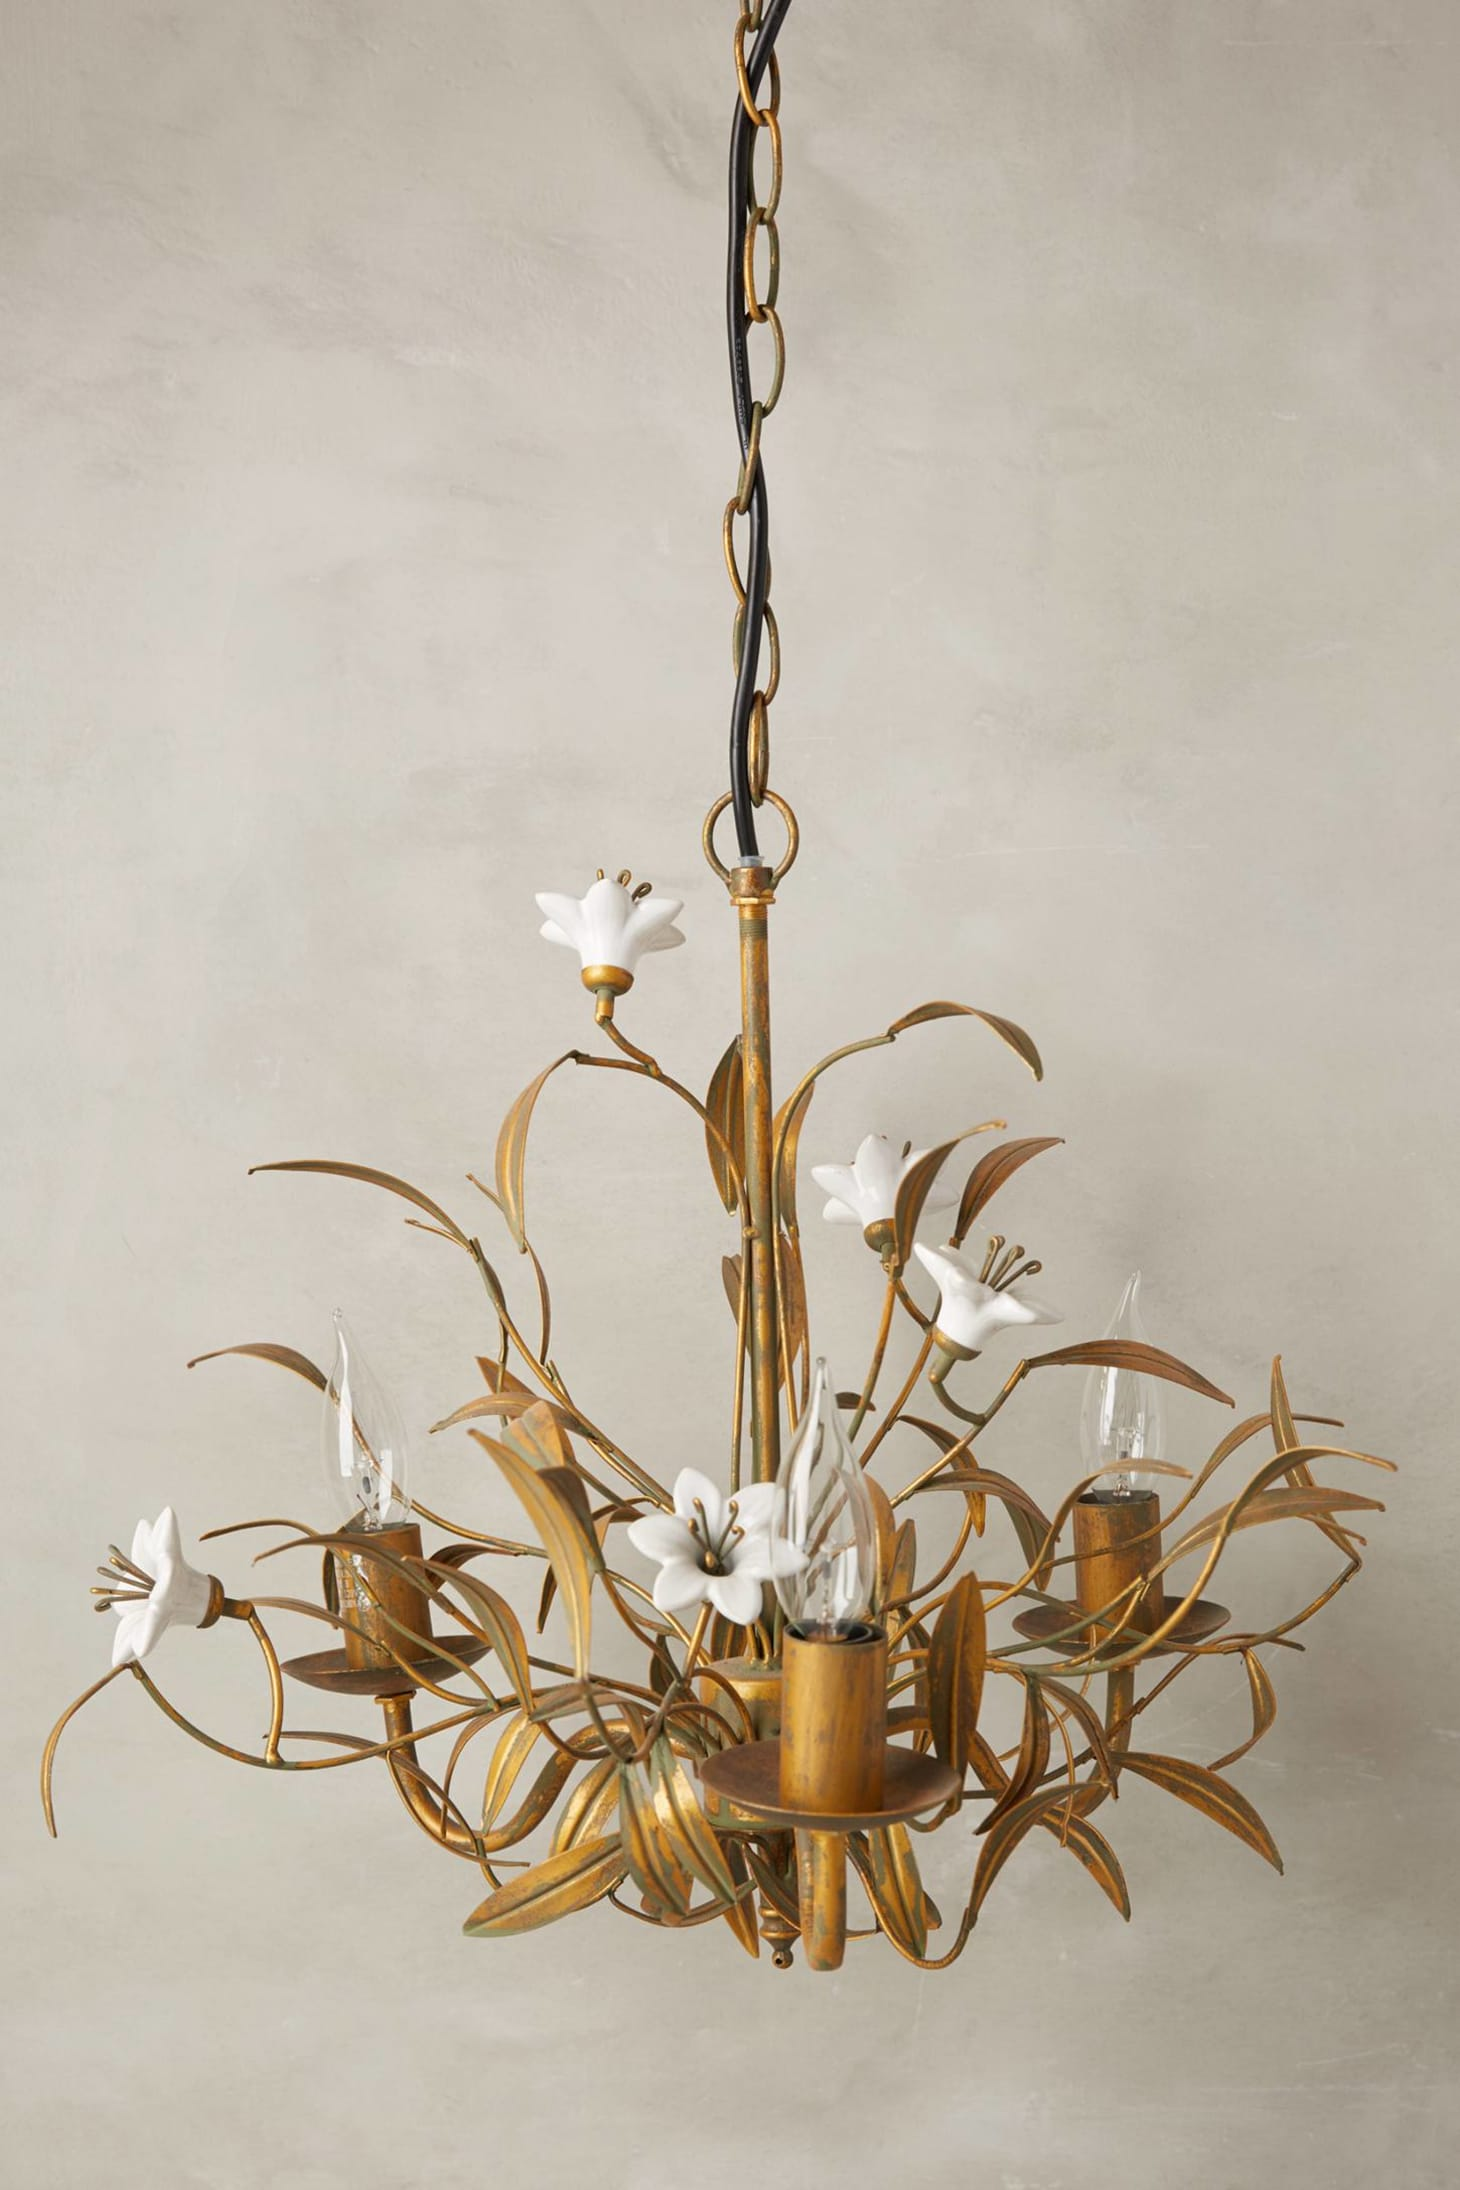 15 Stunning Chandeliers For Every Budget Apartment Therapy